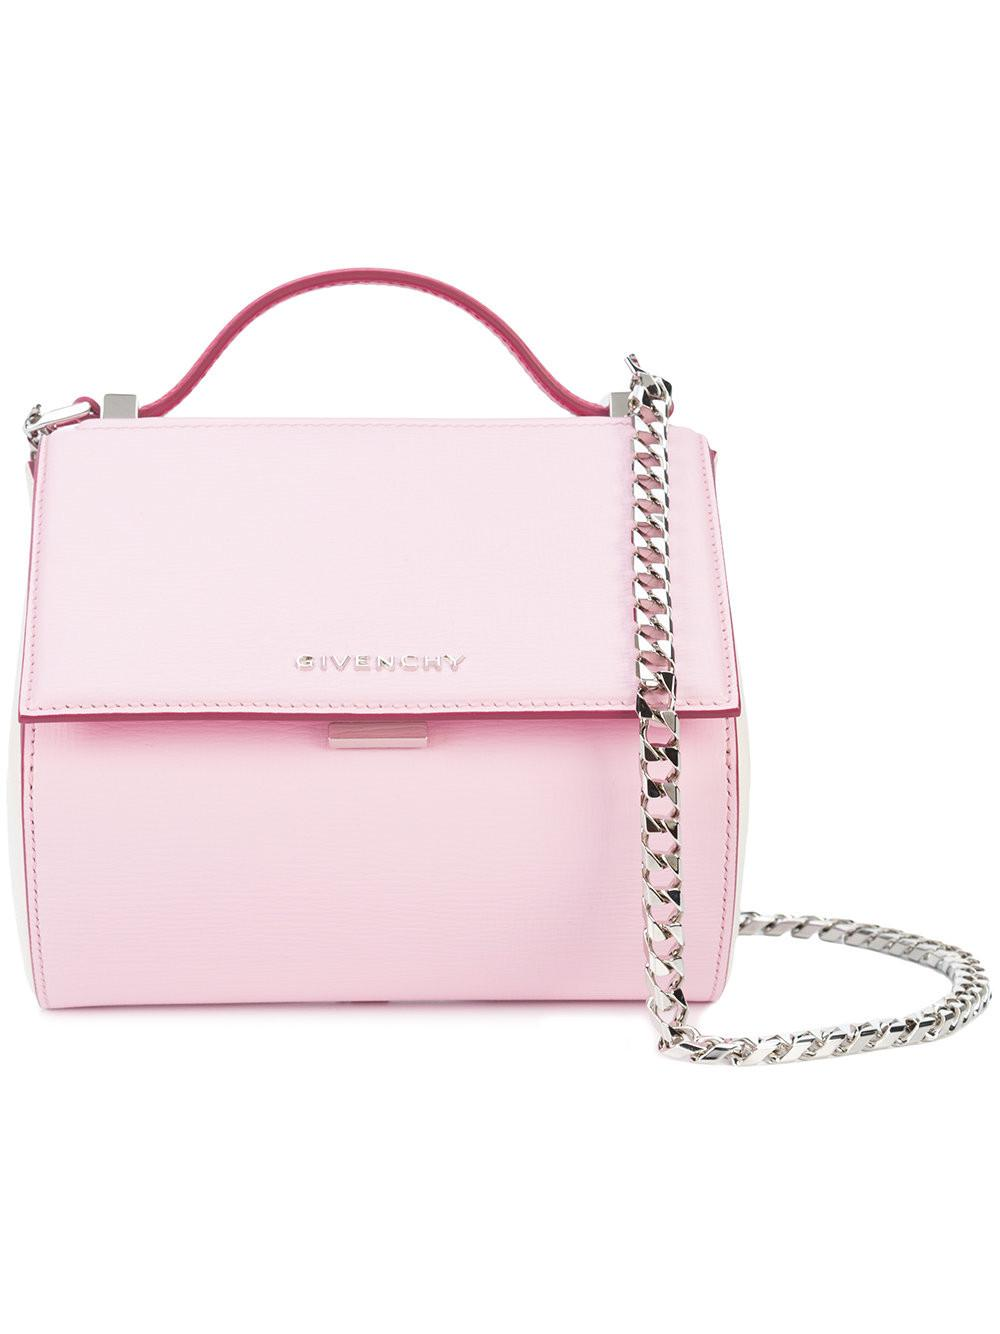 42c3e2ba46 Givenchy Pandora Box Bag